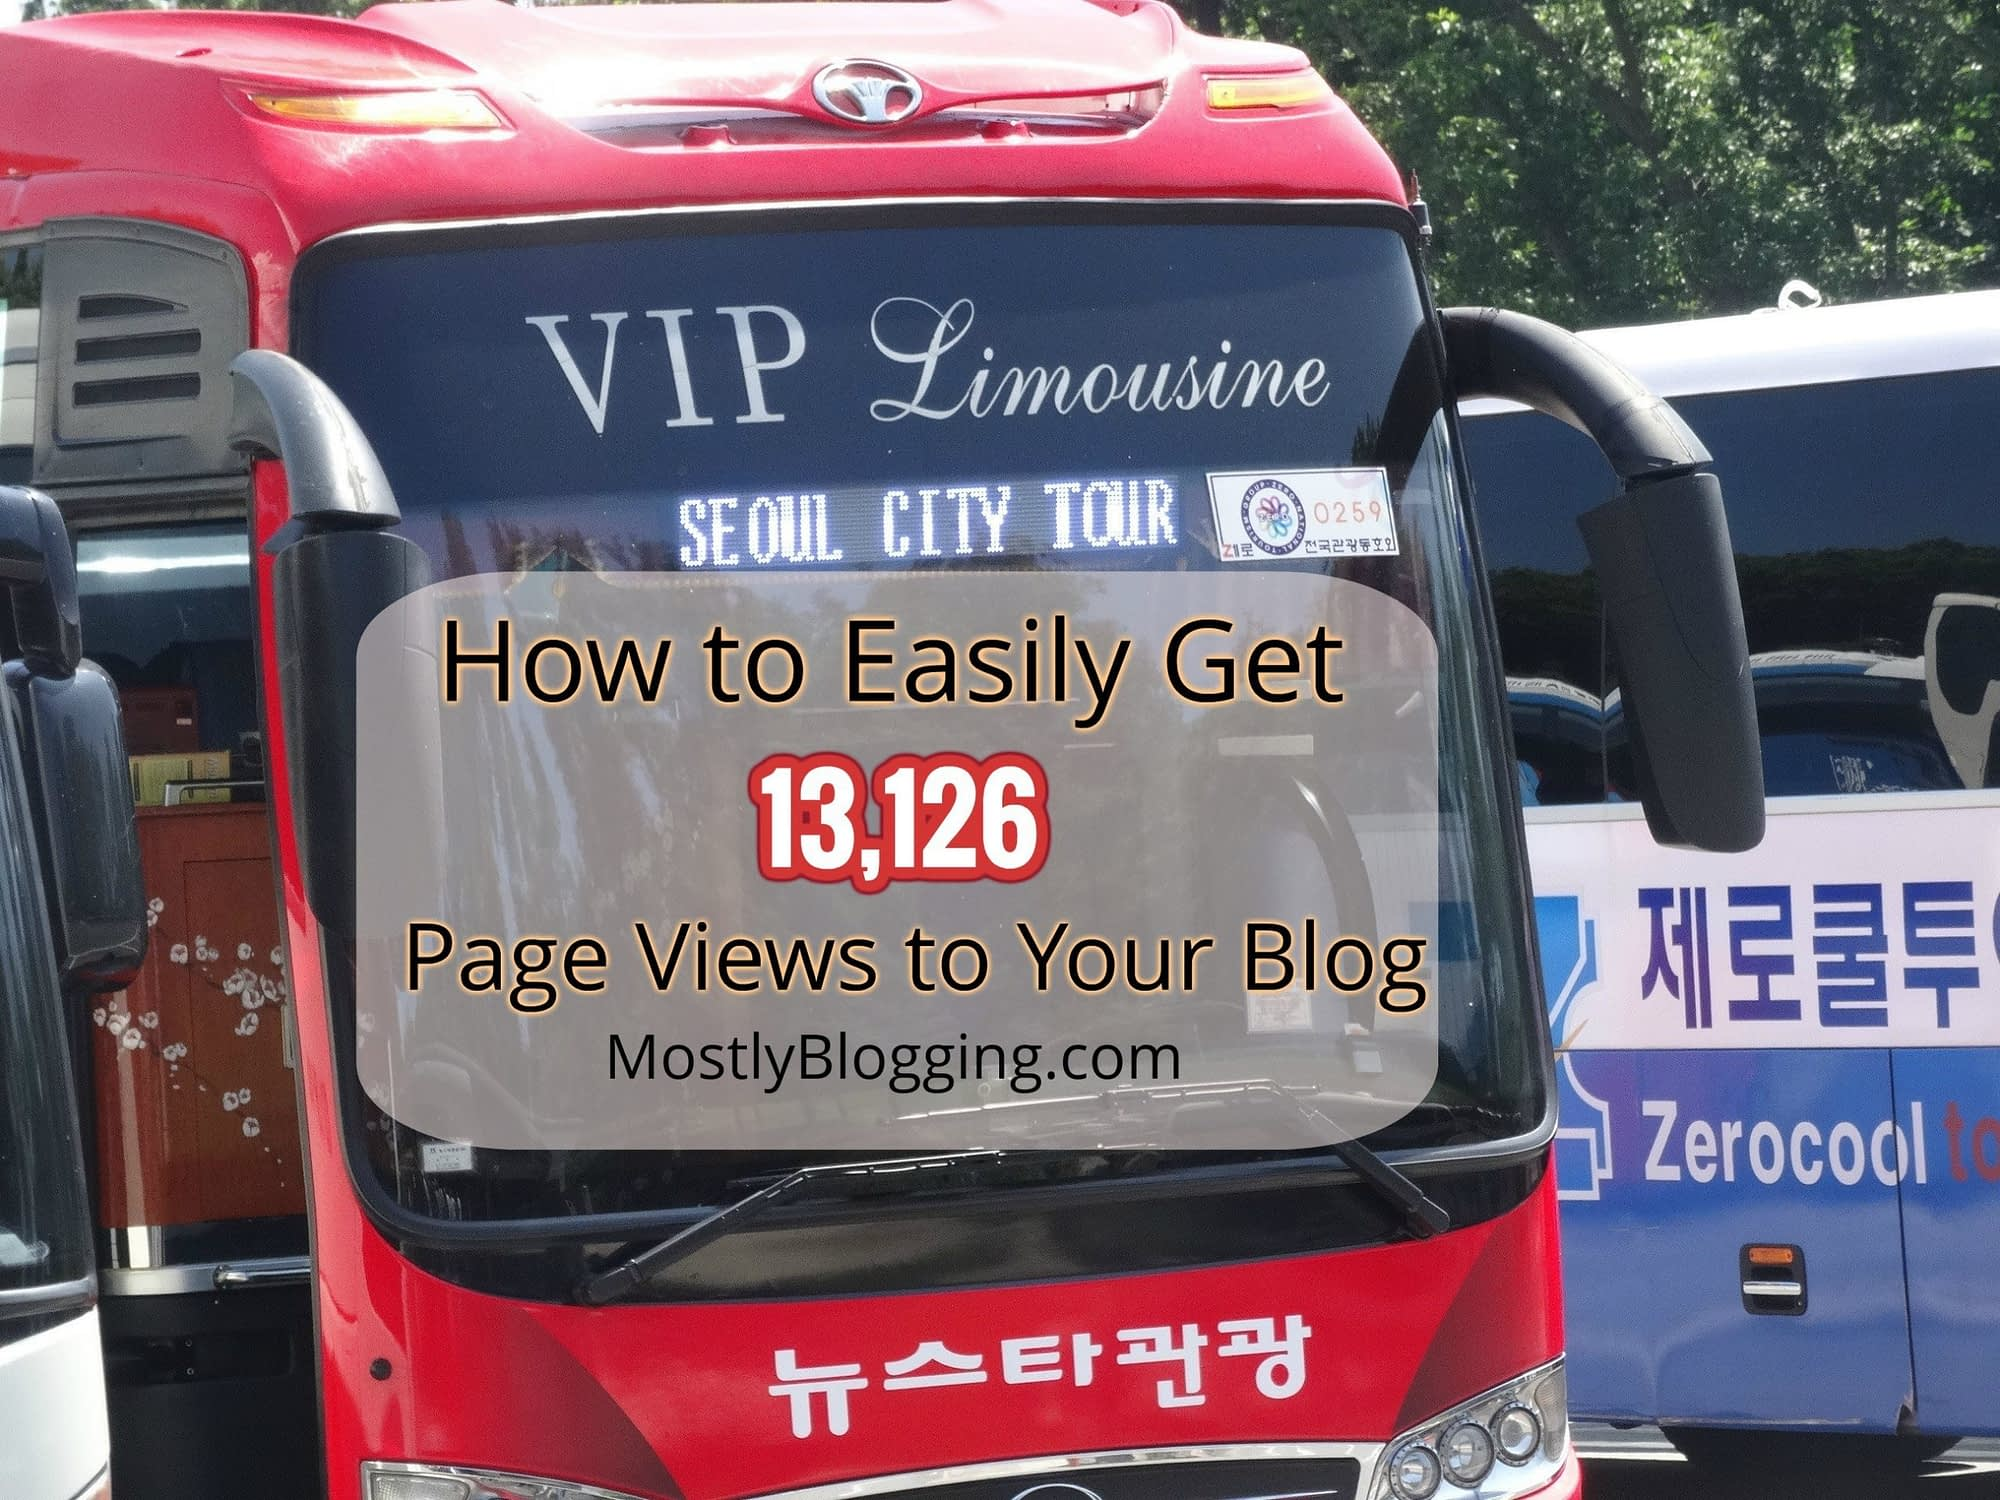 #Bloggers can get high page views by following these #BloggingTips.